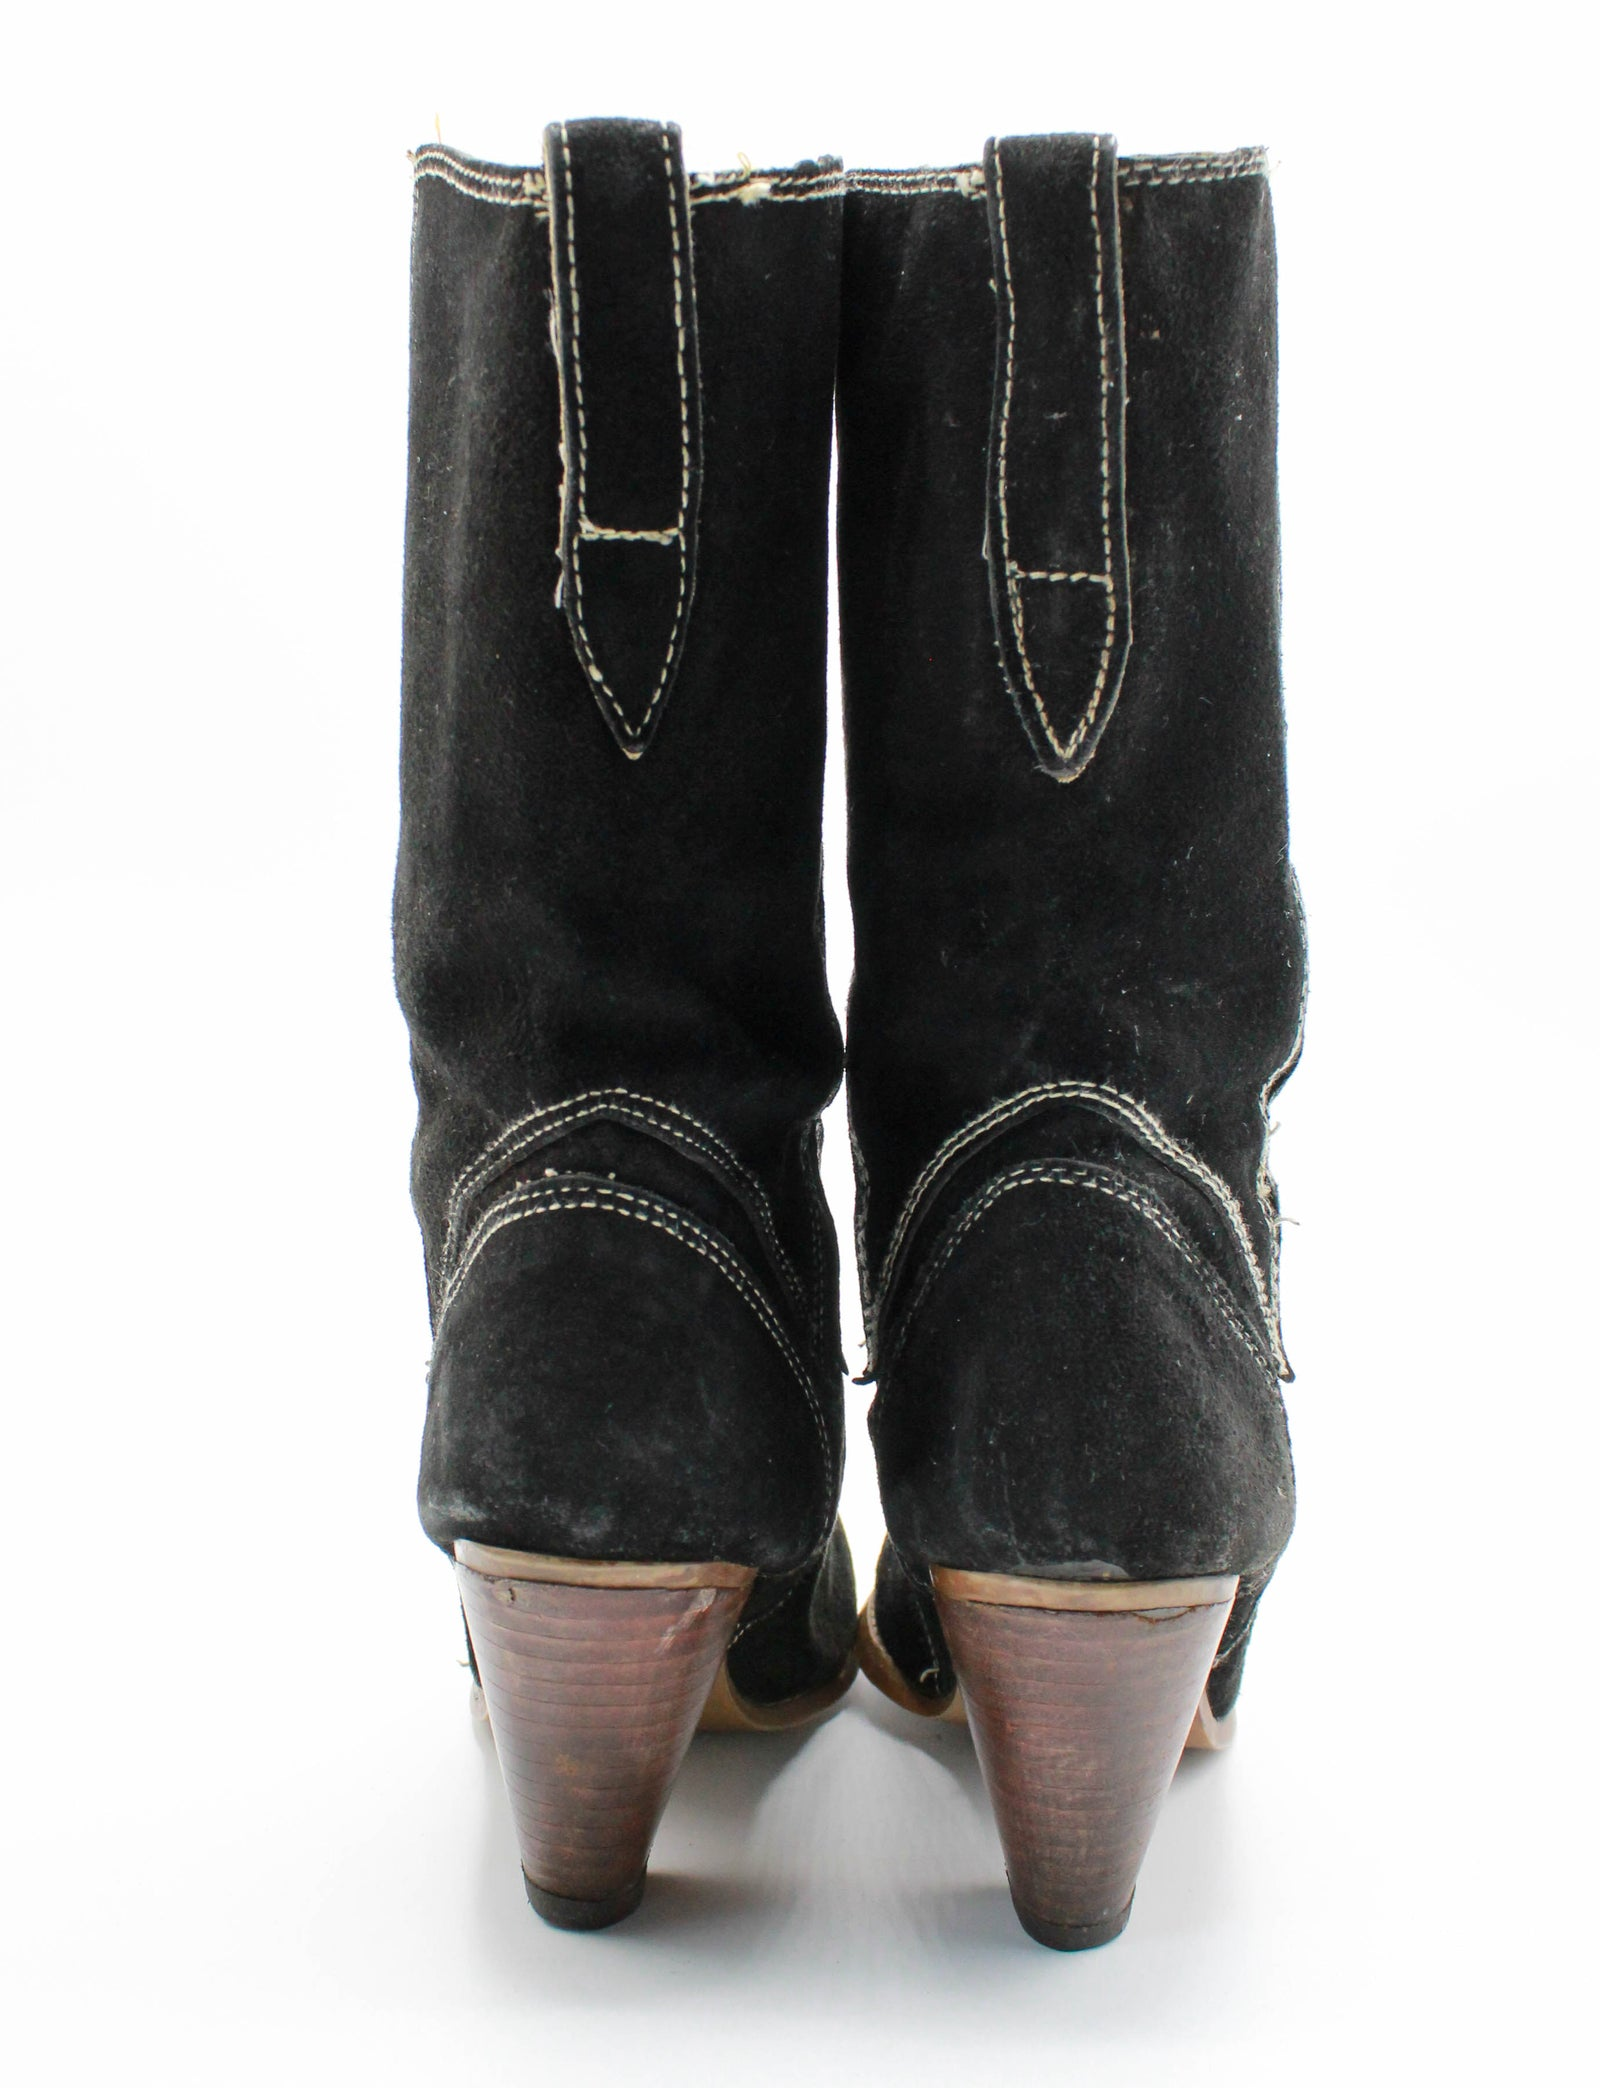 Women's Vintage 80's Town & Country Boots Black Suede Cowgirl Western Size 7B